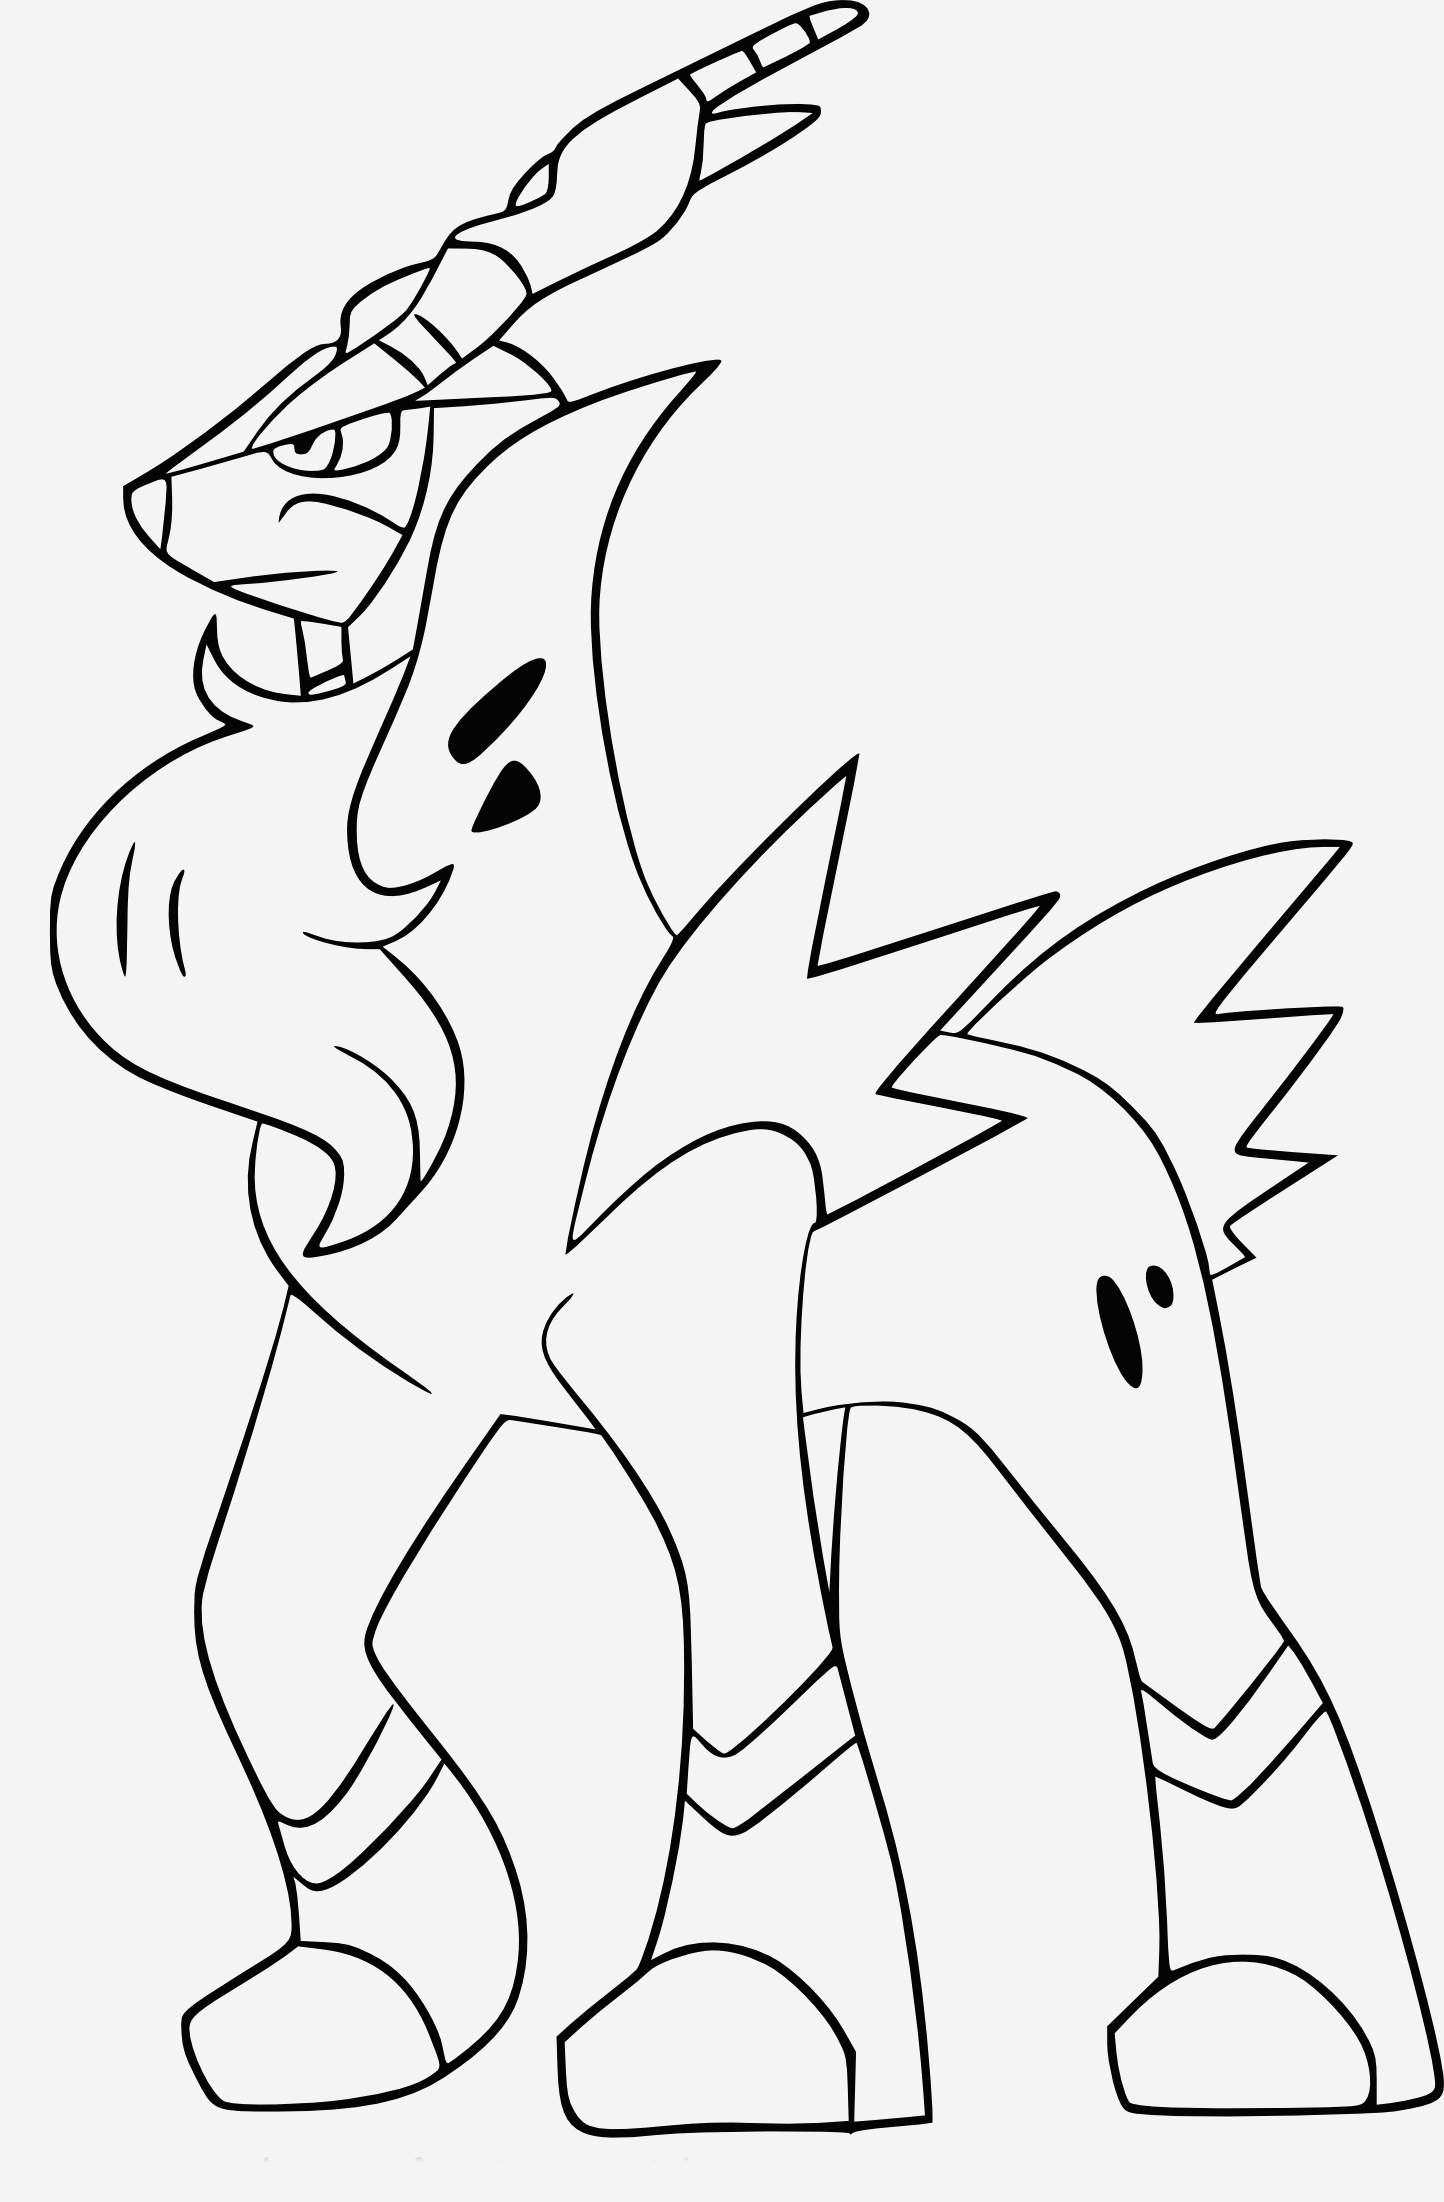 Coloriage à Imprimer Pokemon Legendaire Best Of Coloriage Cobaltium Pokemon   Imprimer Of Coloriage à Imprimer Pokemon Legendaire